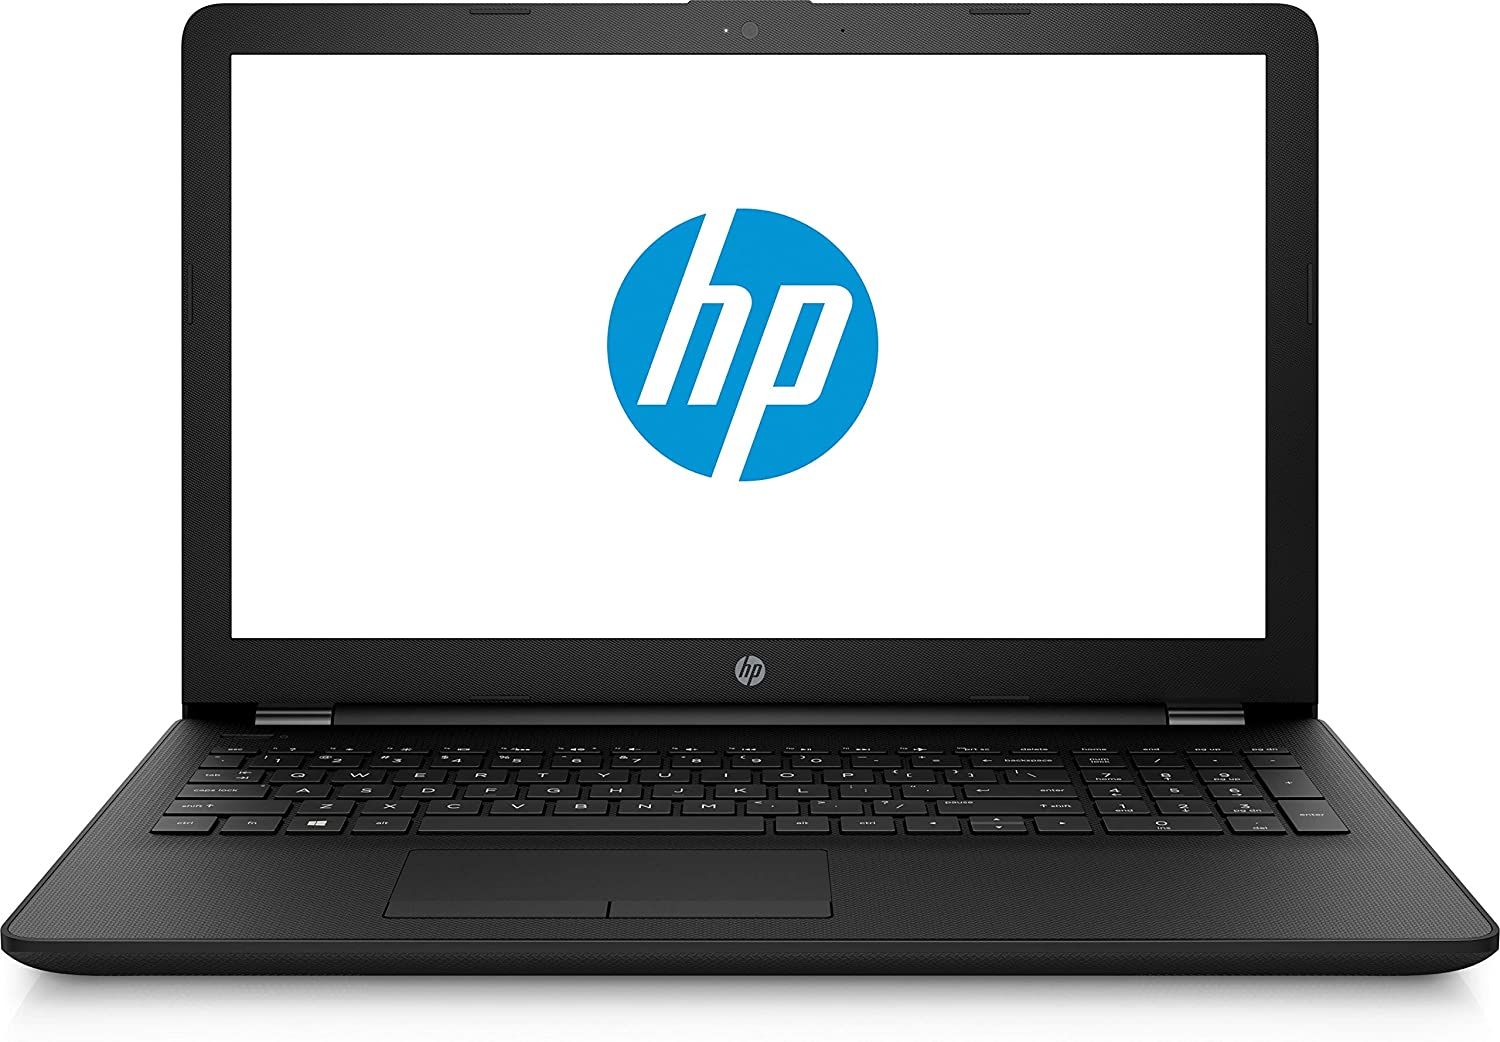 HP 15.6-Inch HD Touchscreen Laptop (Intel Pentium Silver N5000 1.1GHz, 4GB DDR4-2400 Memory, 1TB HDD, HDMI, HD Webcam, Win 10)